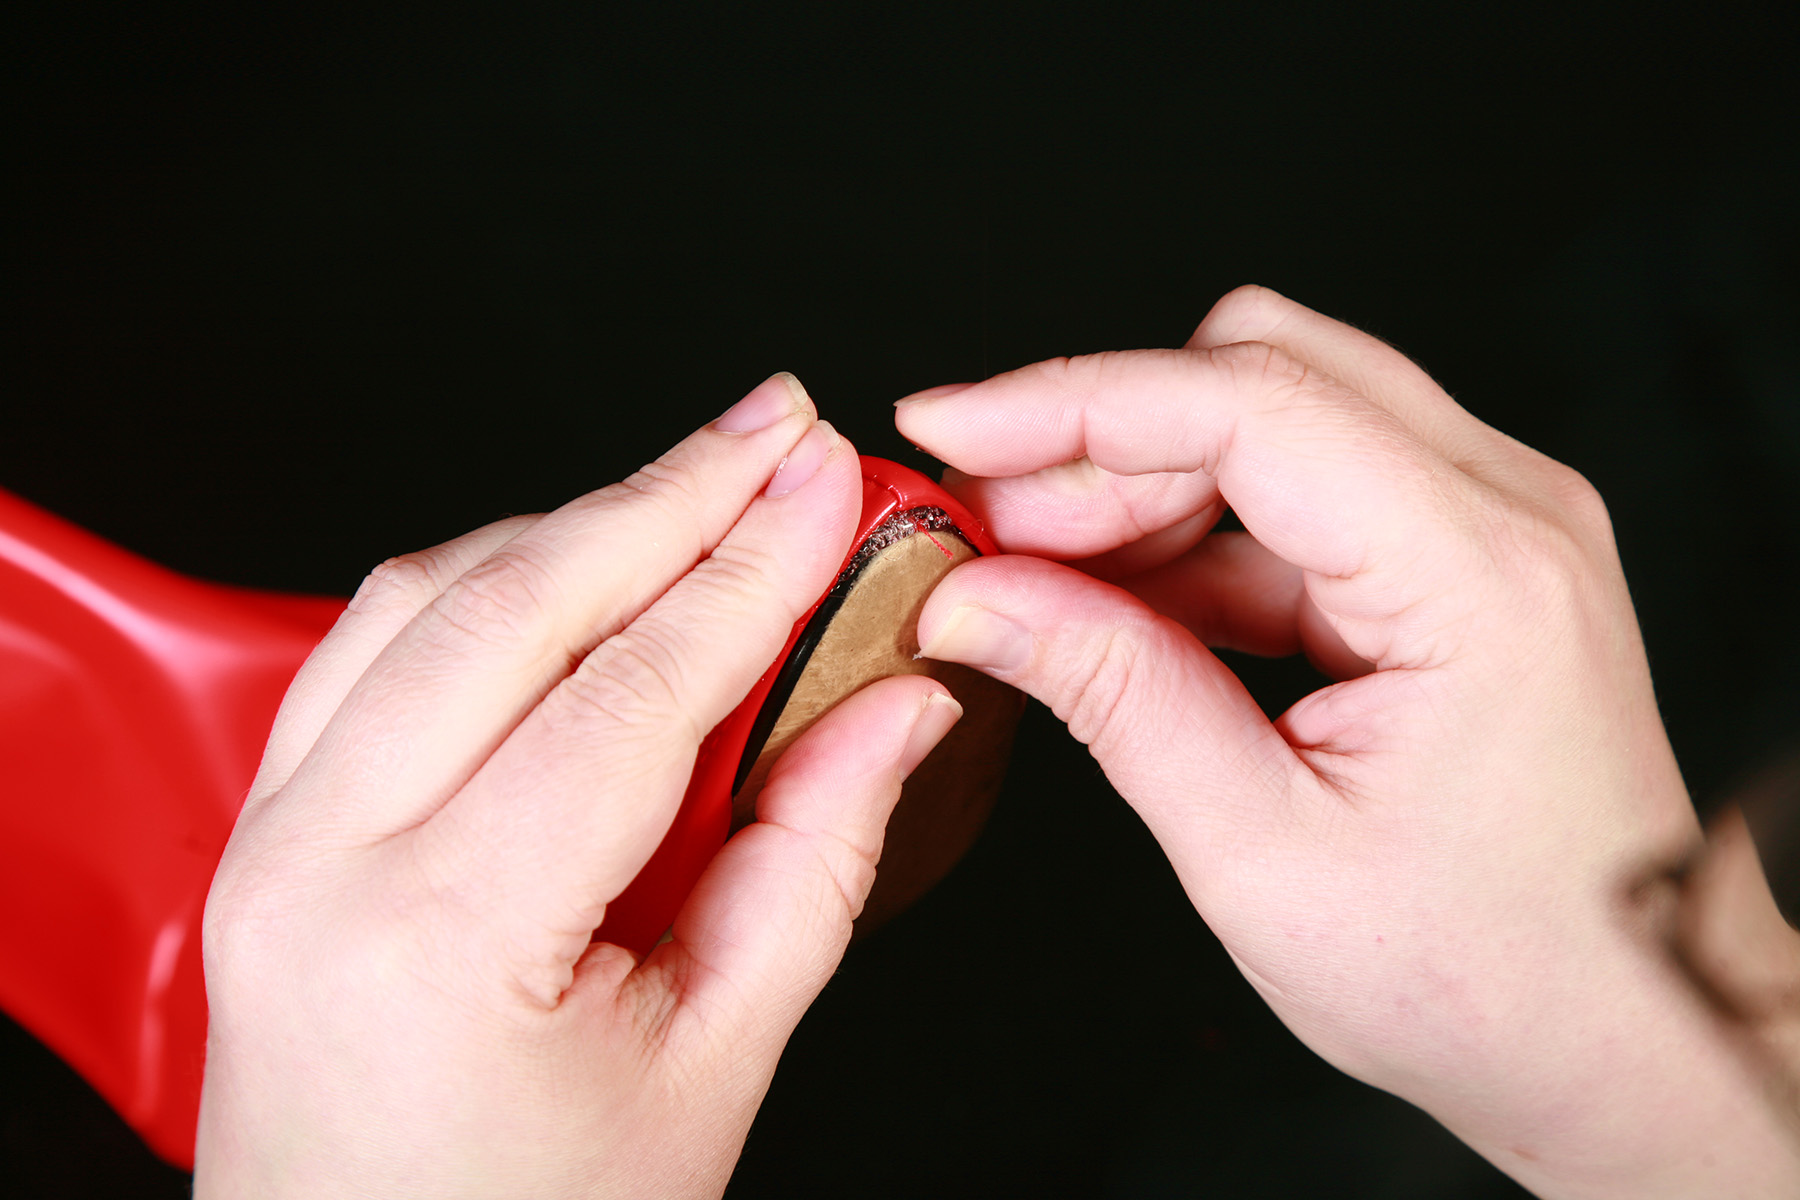 Two hands are pressing red spandex down around the toe of a shoe.